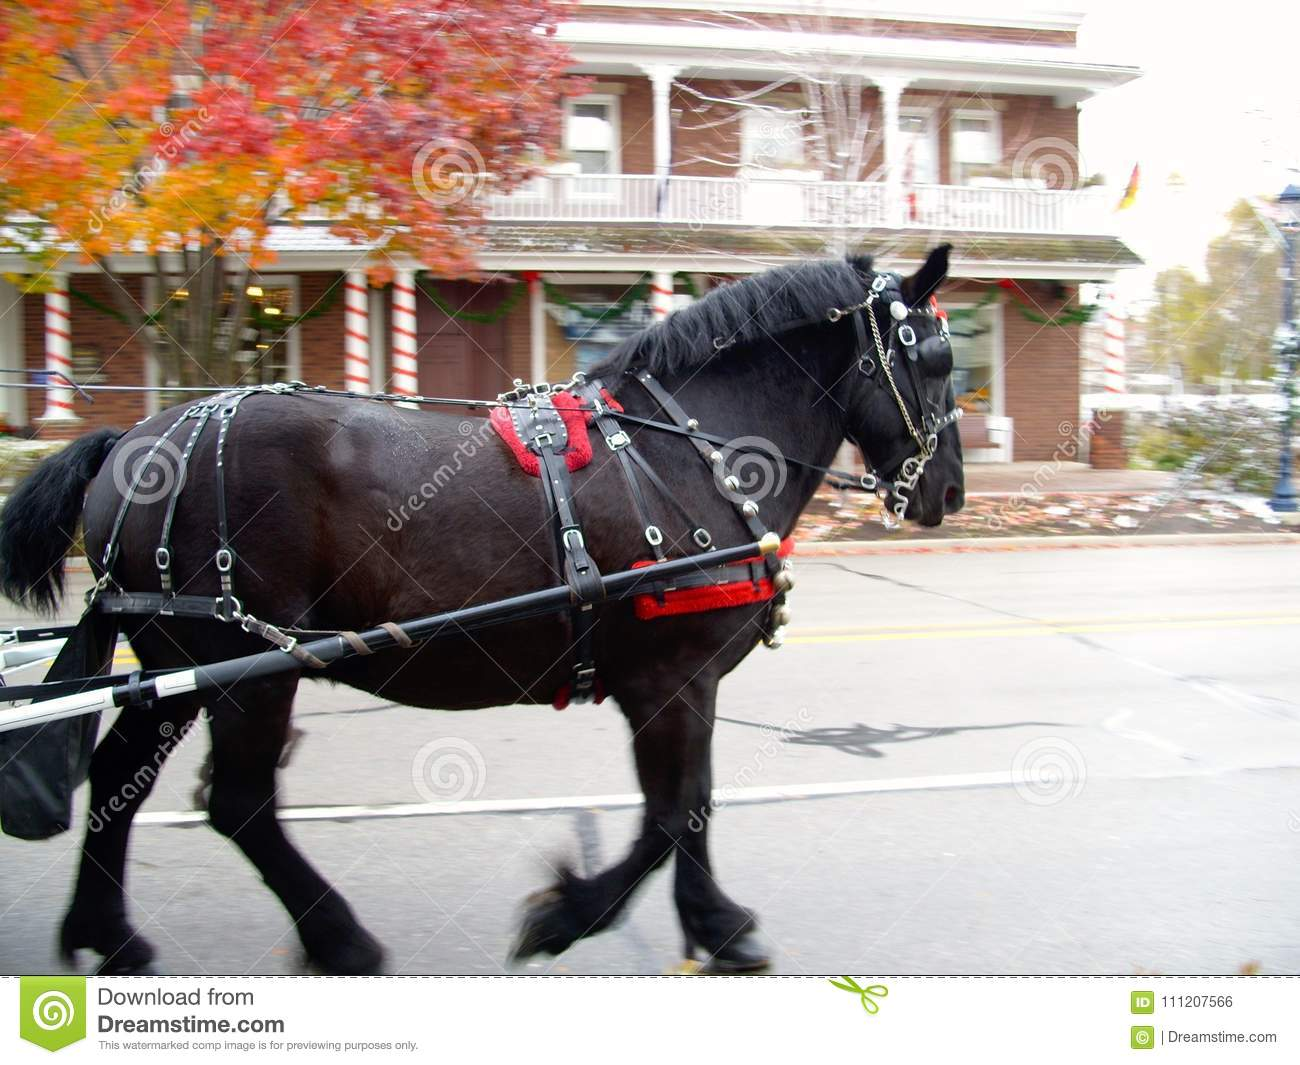 Carriage horse with fall colors and vintage building background